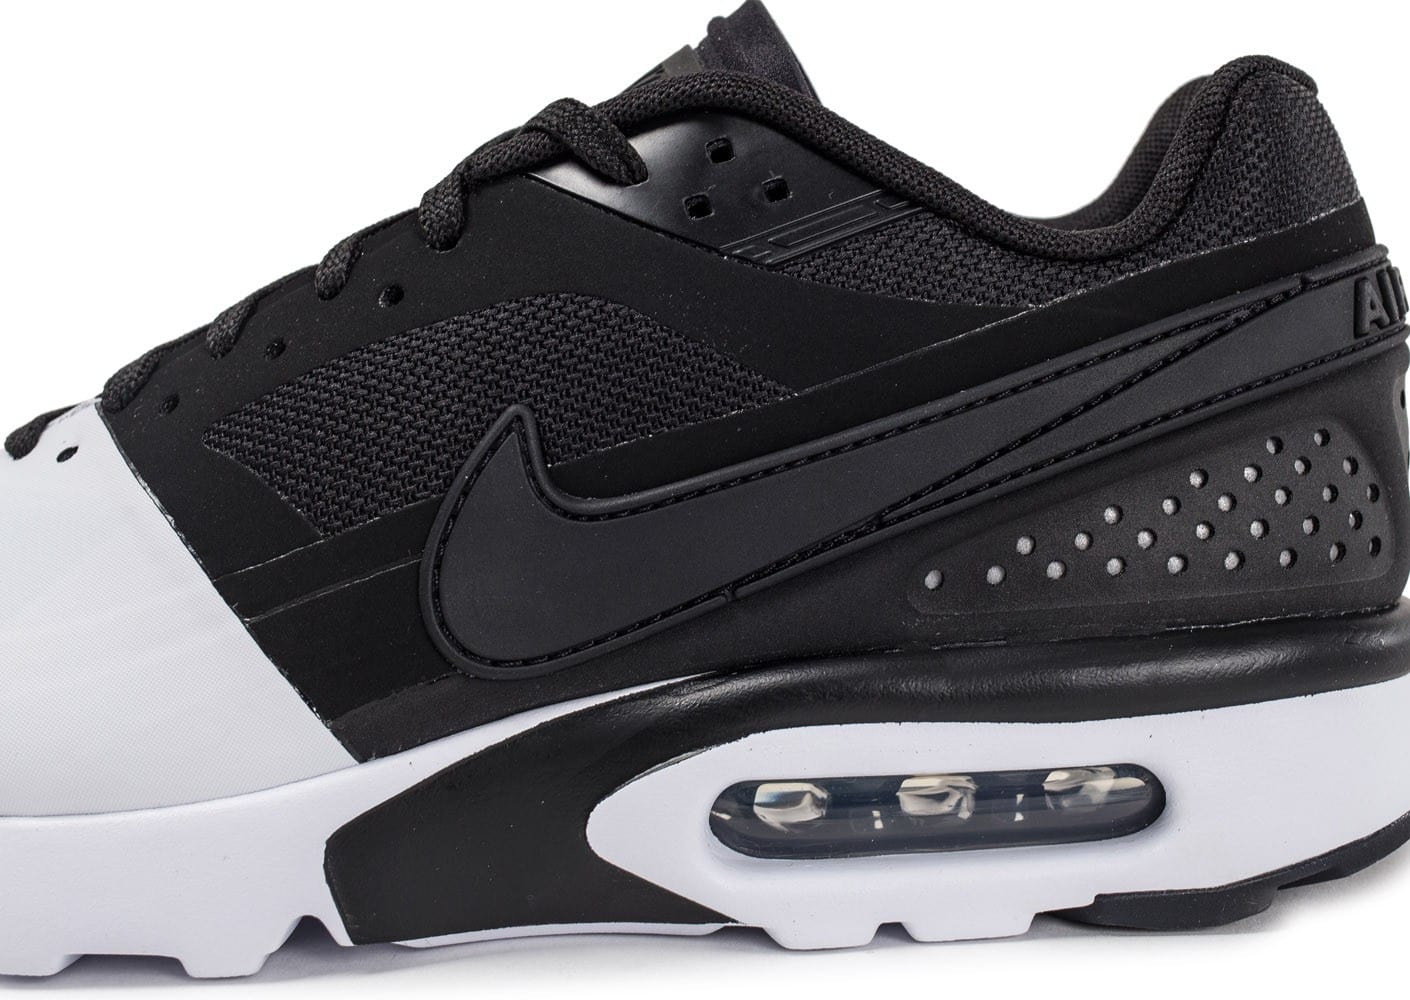 reputable site 64928 f2b76 ... Chaussures Nike Air Max BW Ultra SE noire et blanche vue dessus